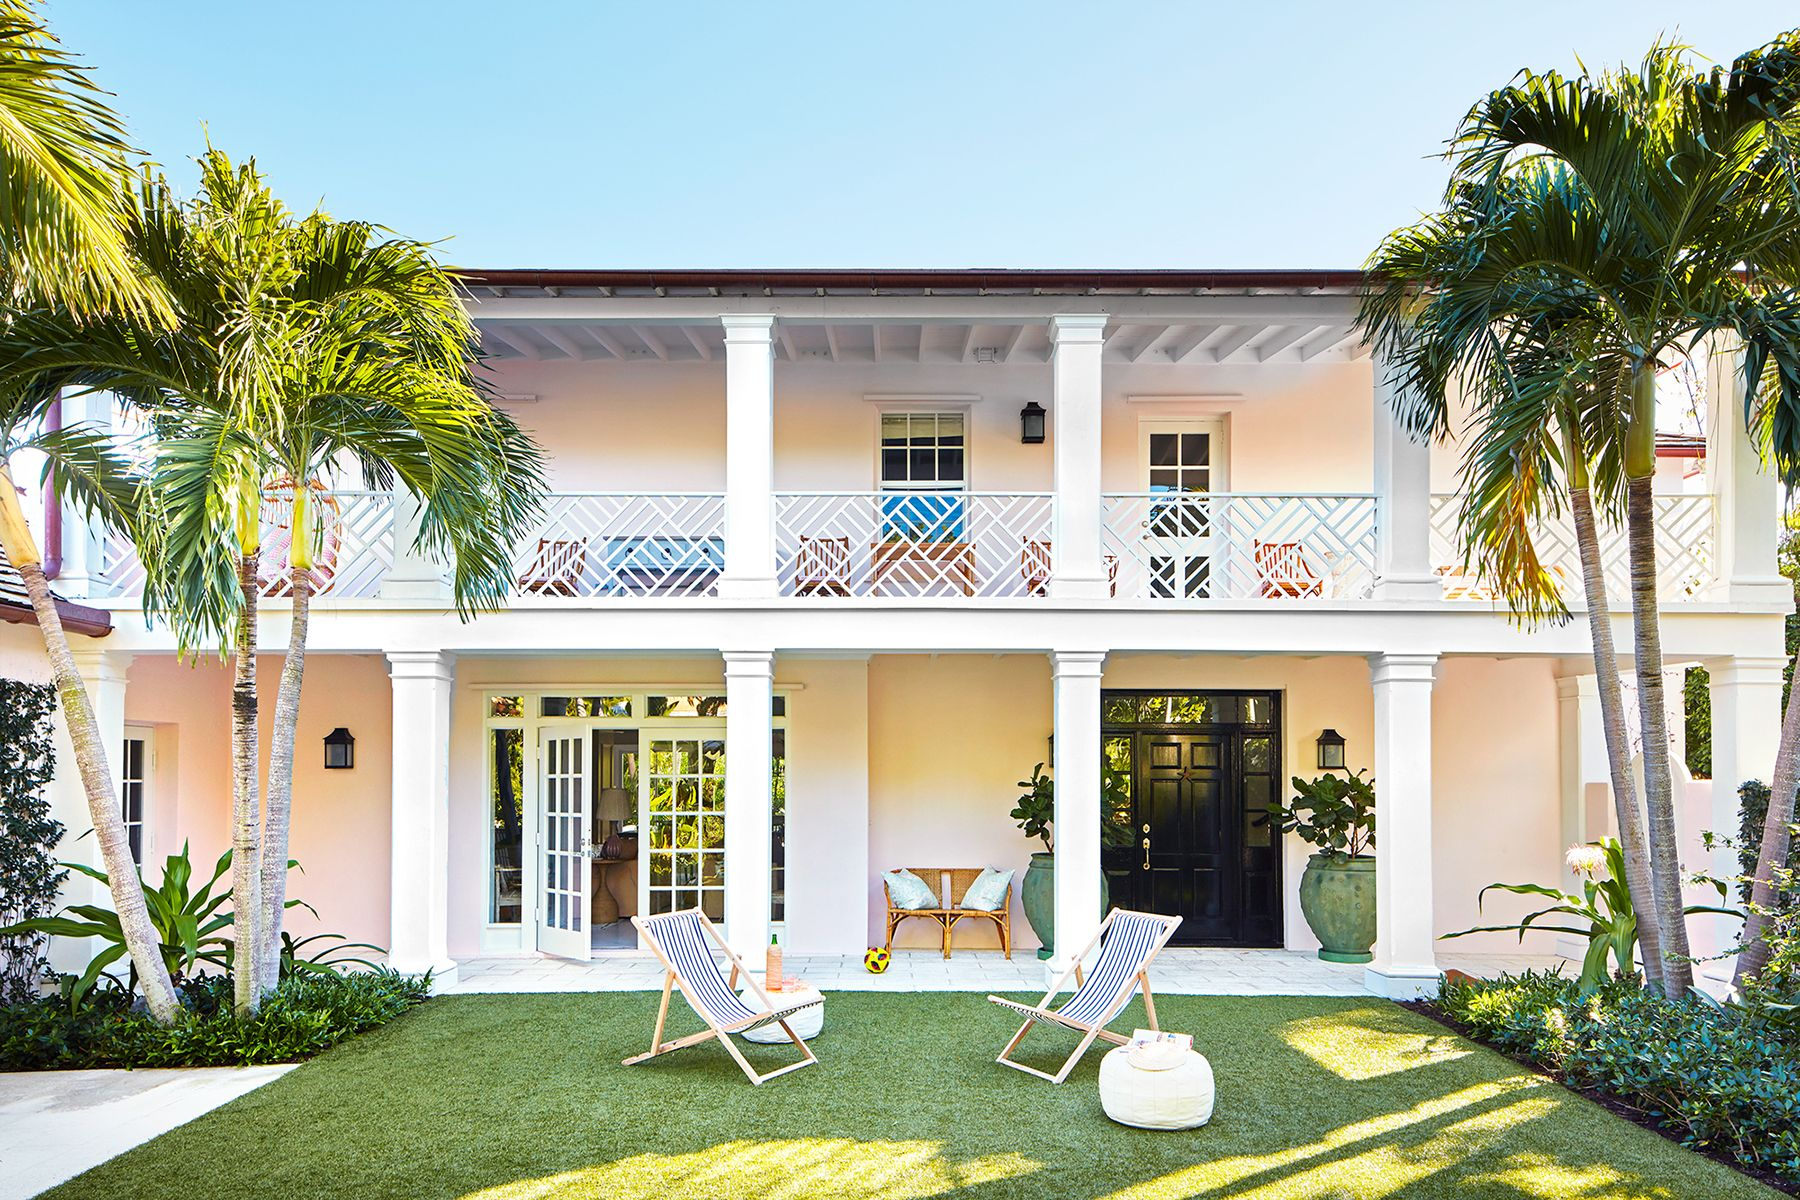 36 Charming Front Porch Ideas Porch Design And Decorating Tips